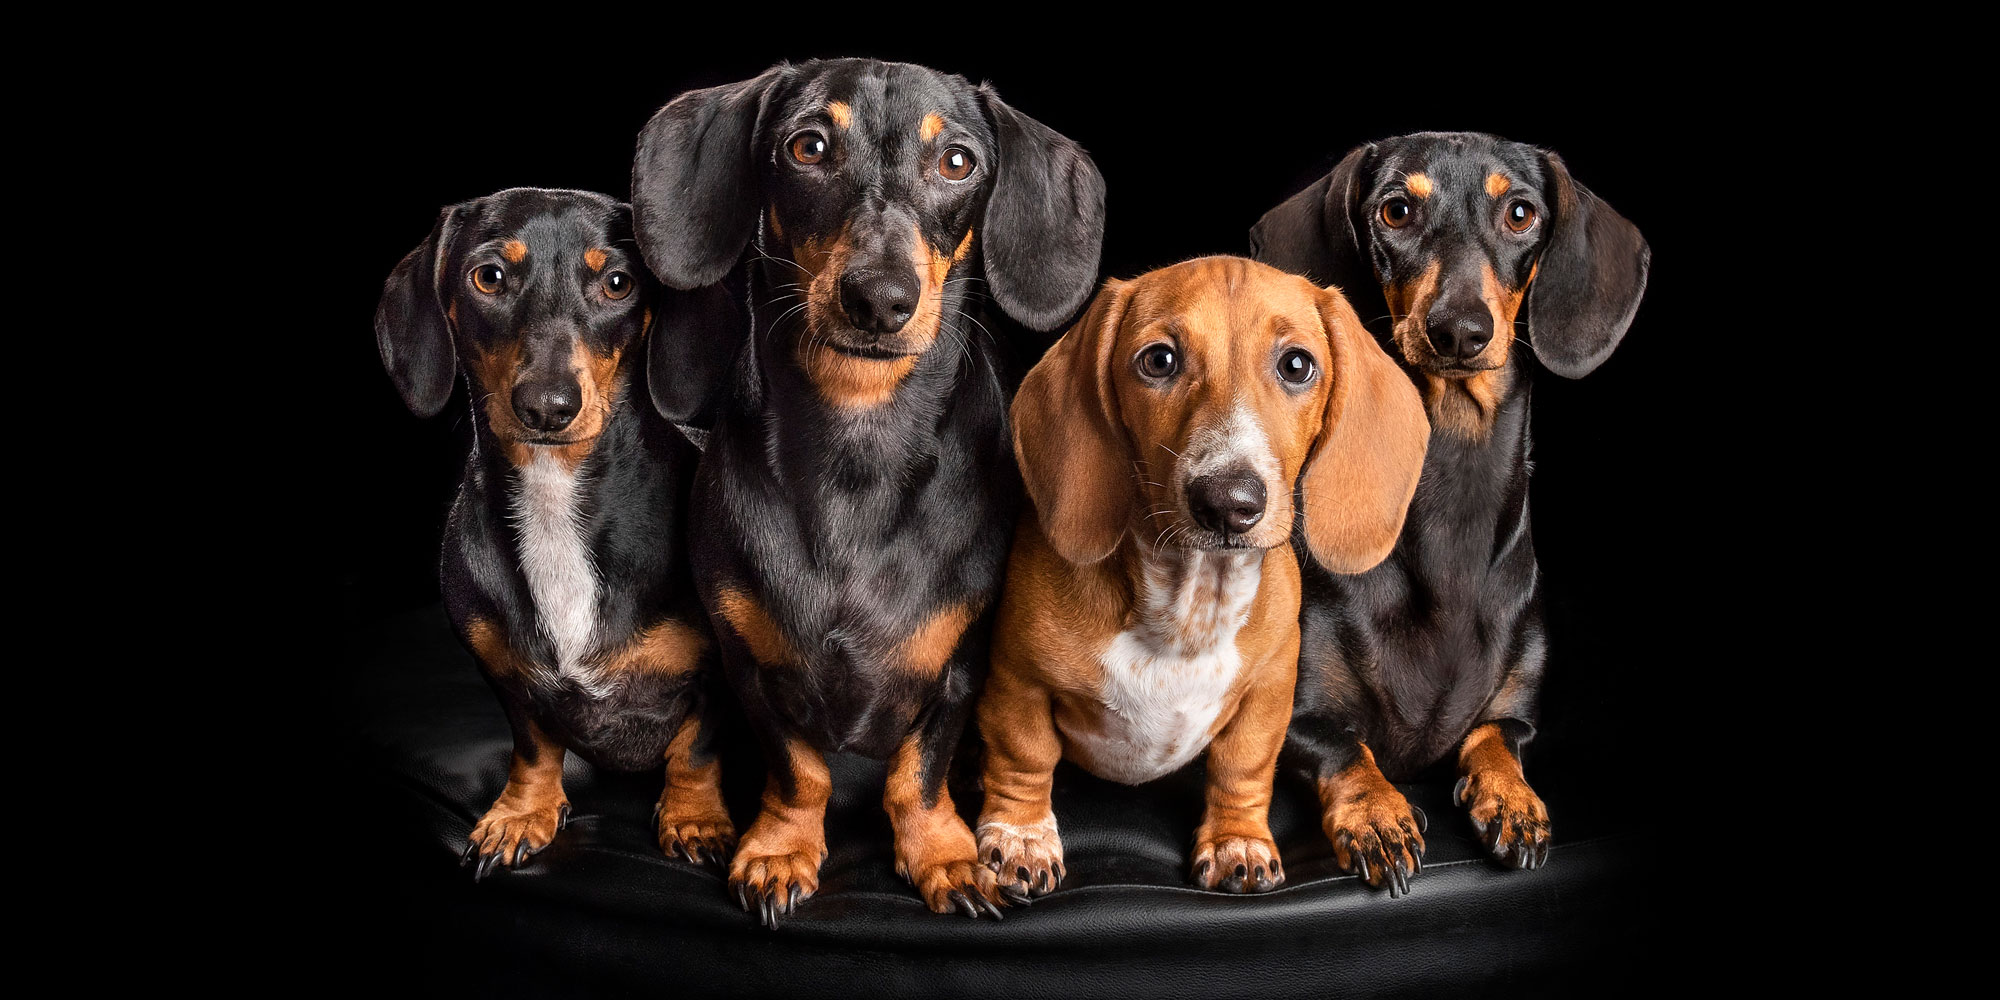 family of four dachshund  fur-siblings sitting together